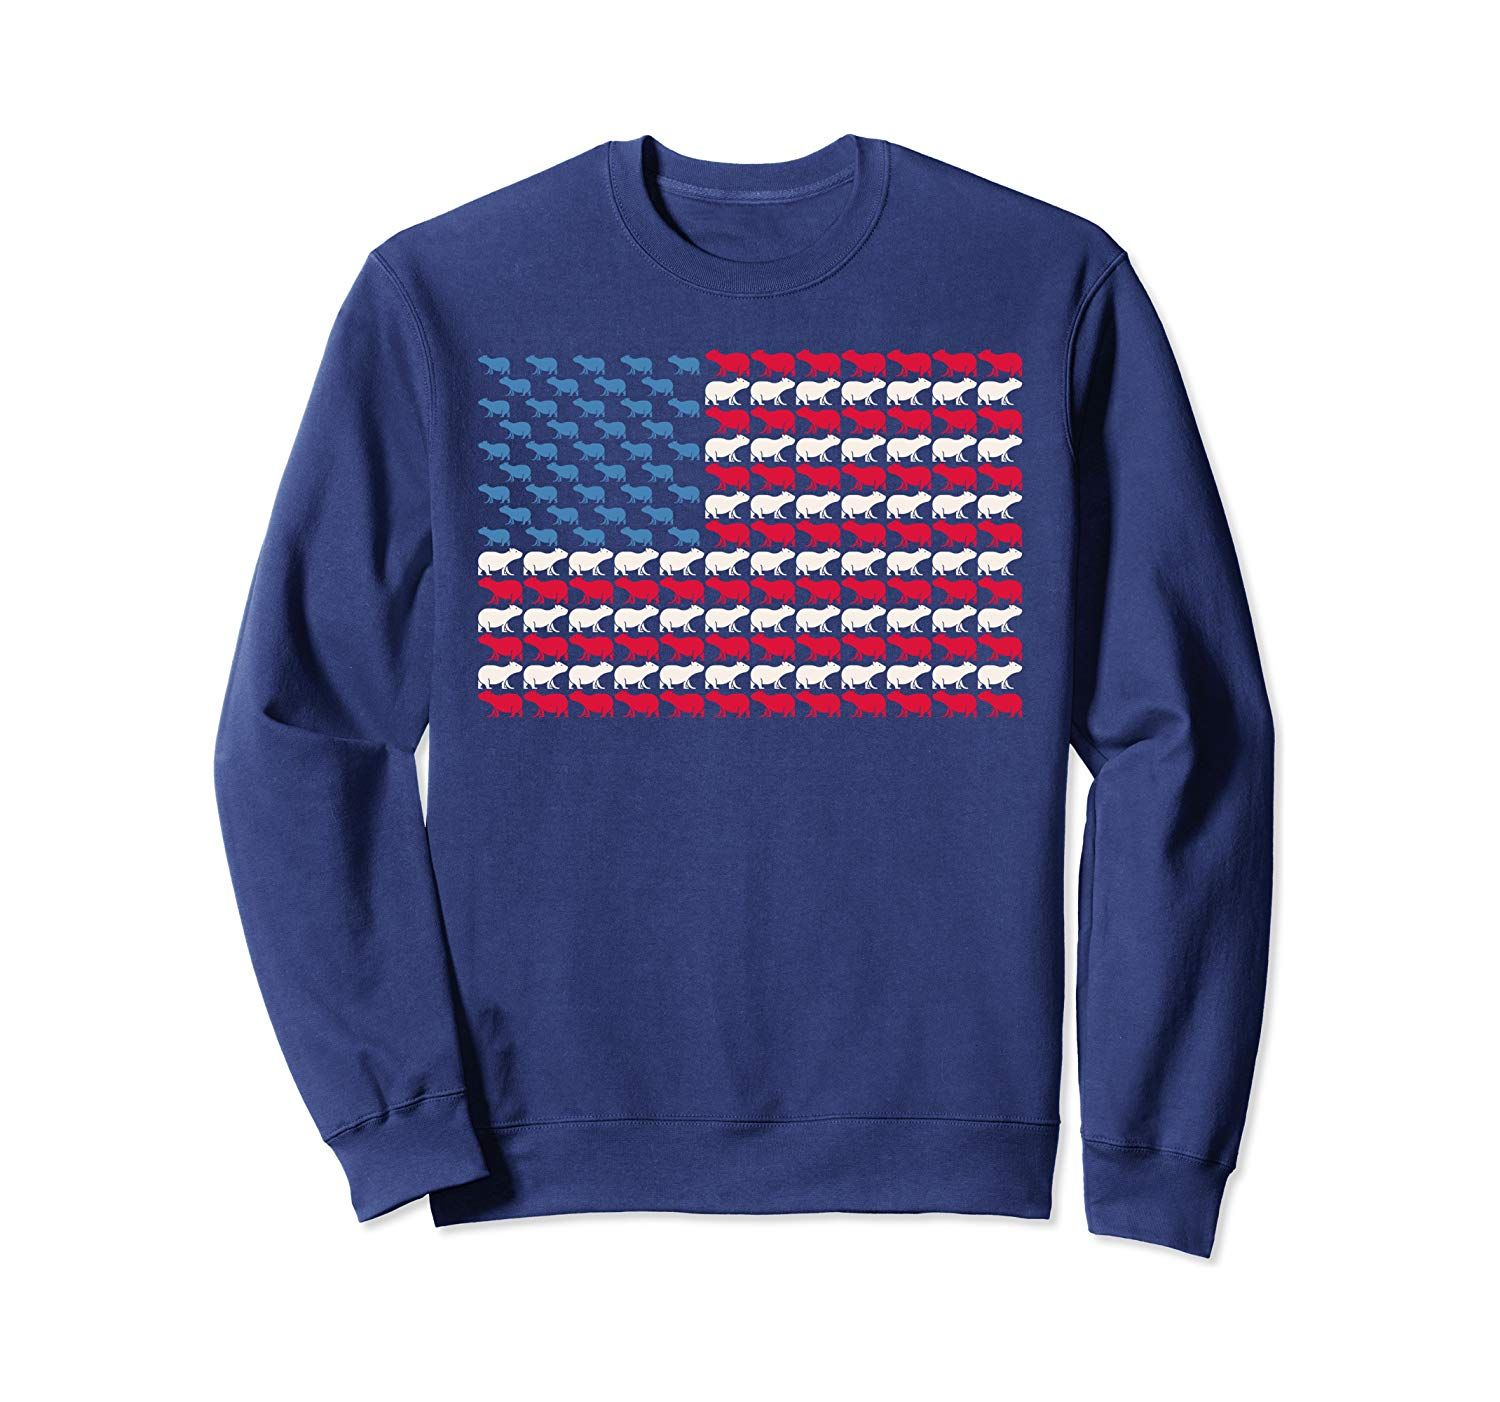 Capybara American Flag Mammal US 4th Of July Animal USA Gift Sweatshirt #americanflag